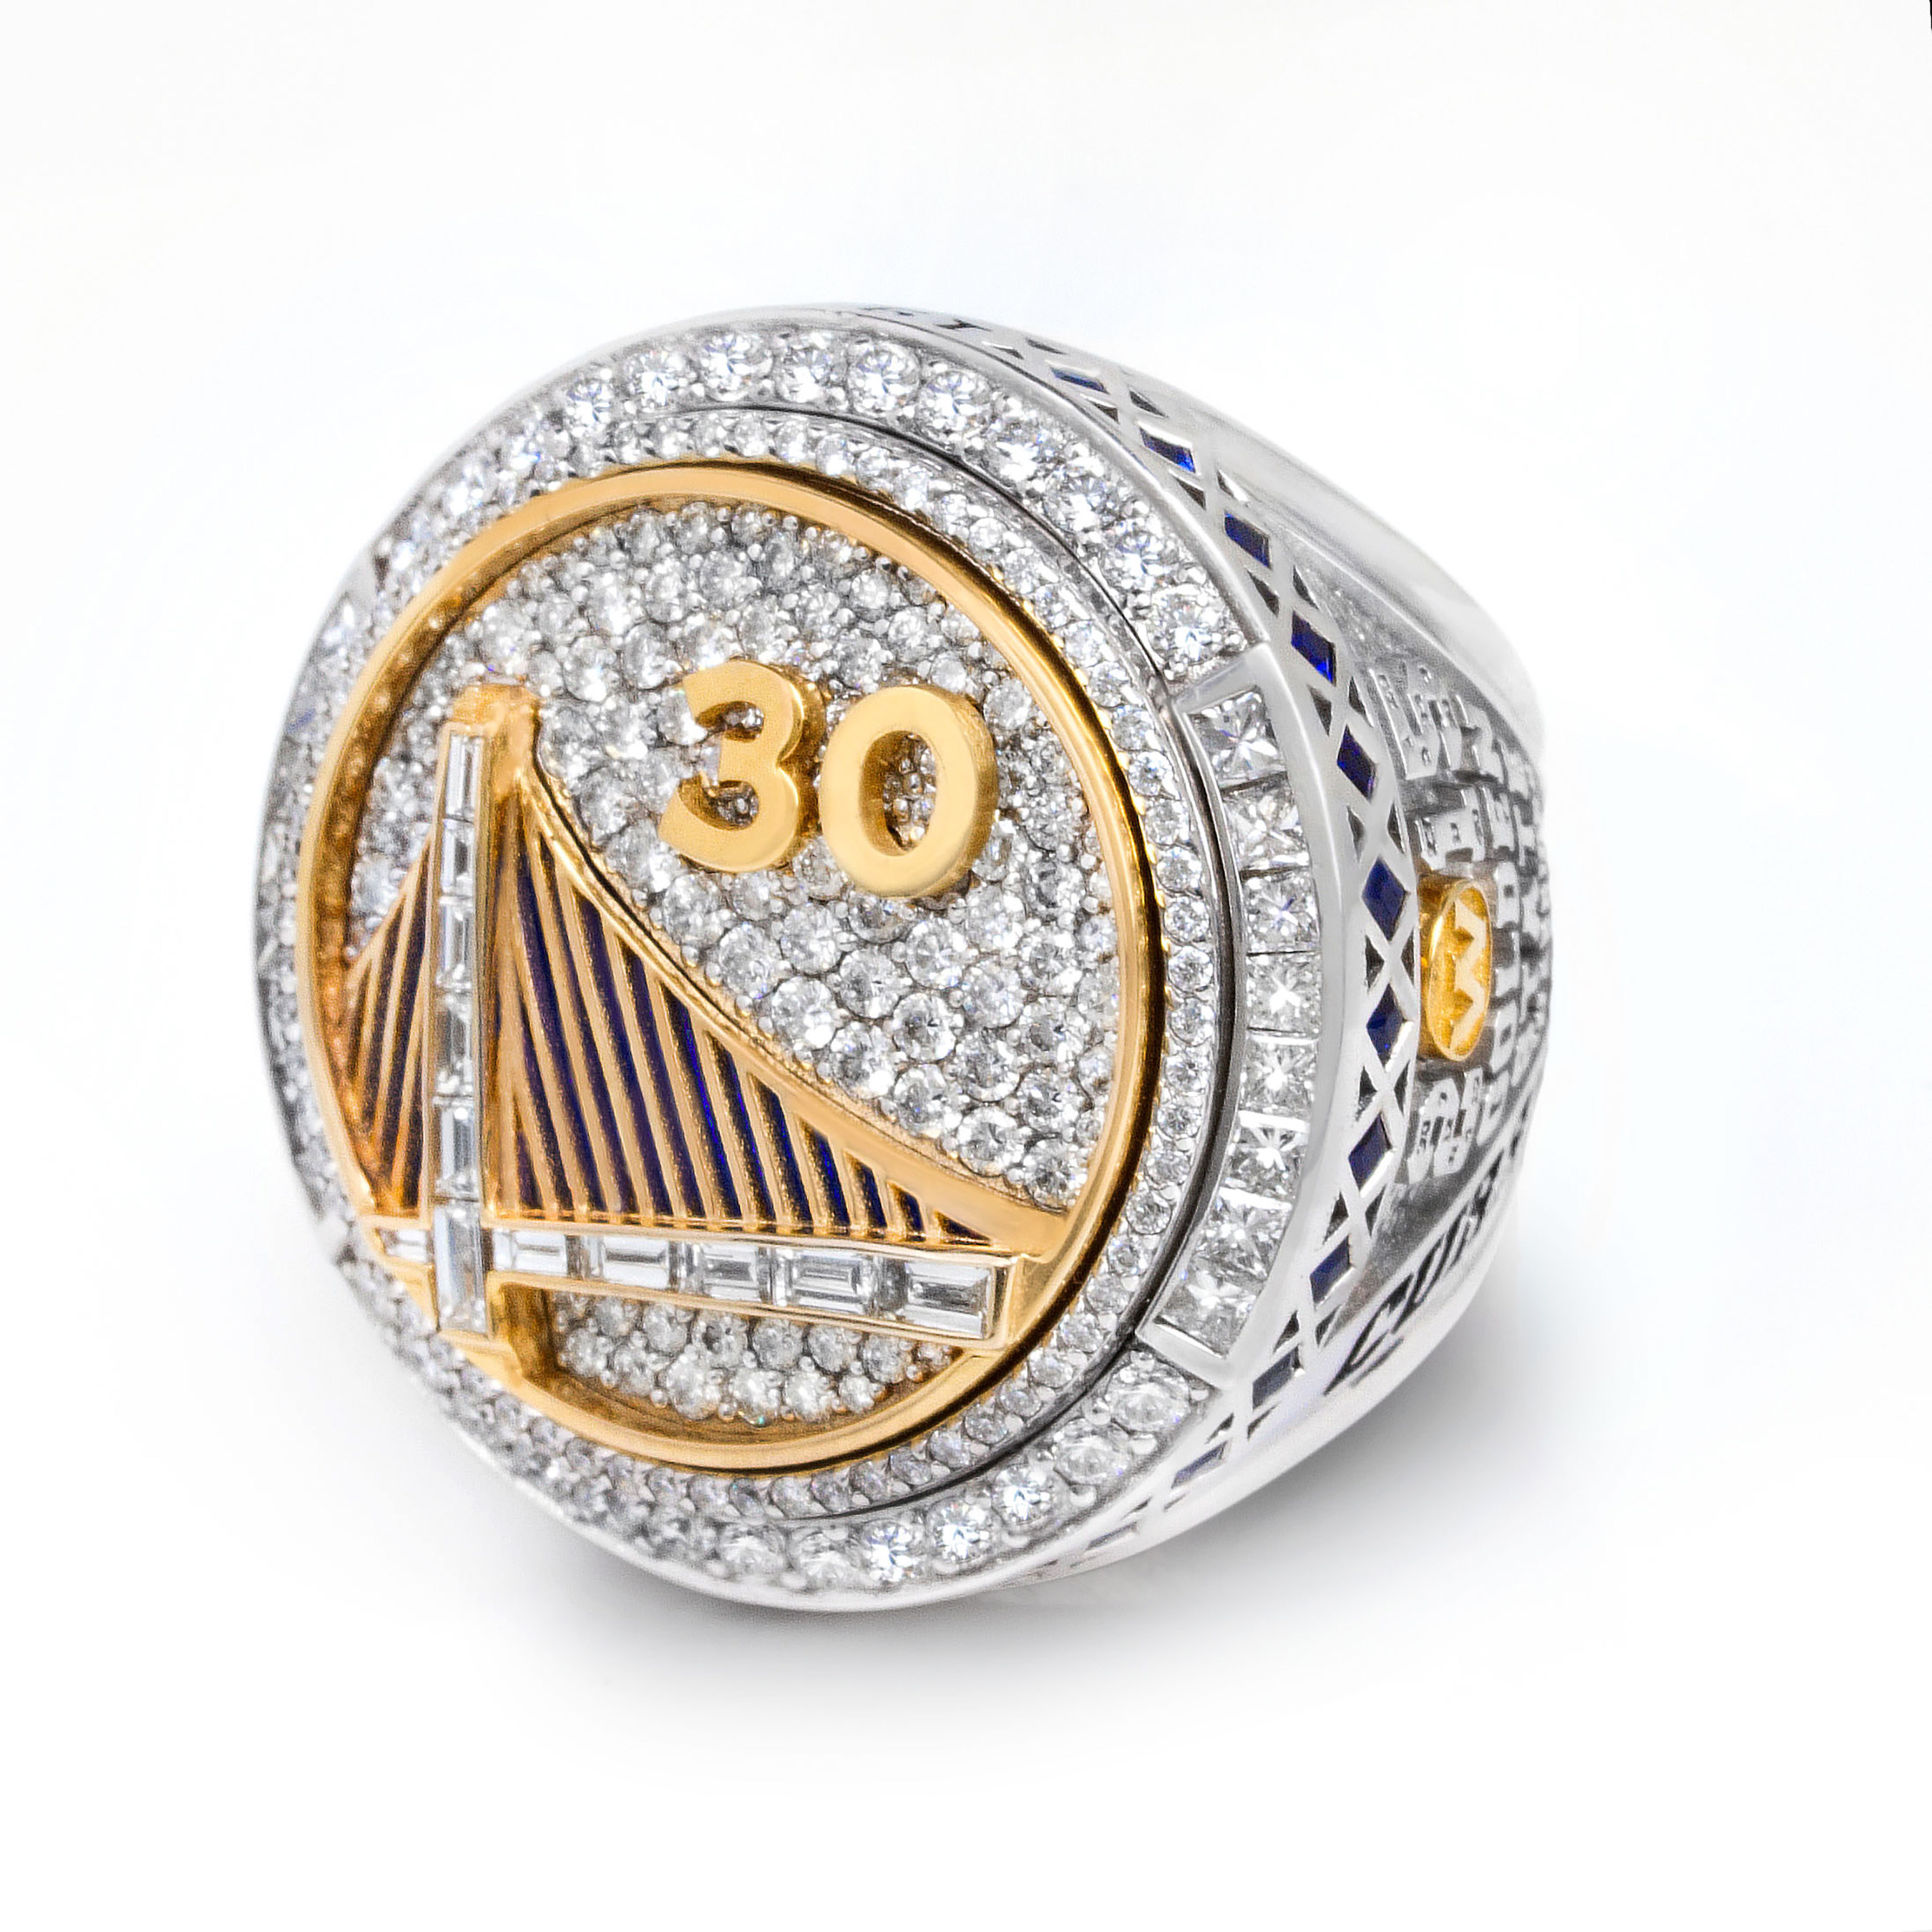 2015 Nba Championship Ring Designed By Jason Of Beverly Hills Unveiled At Golden State Warriors Home Opener